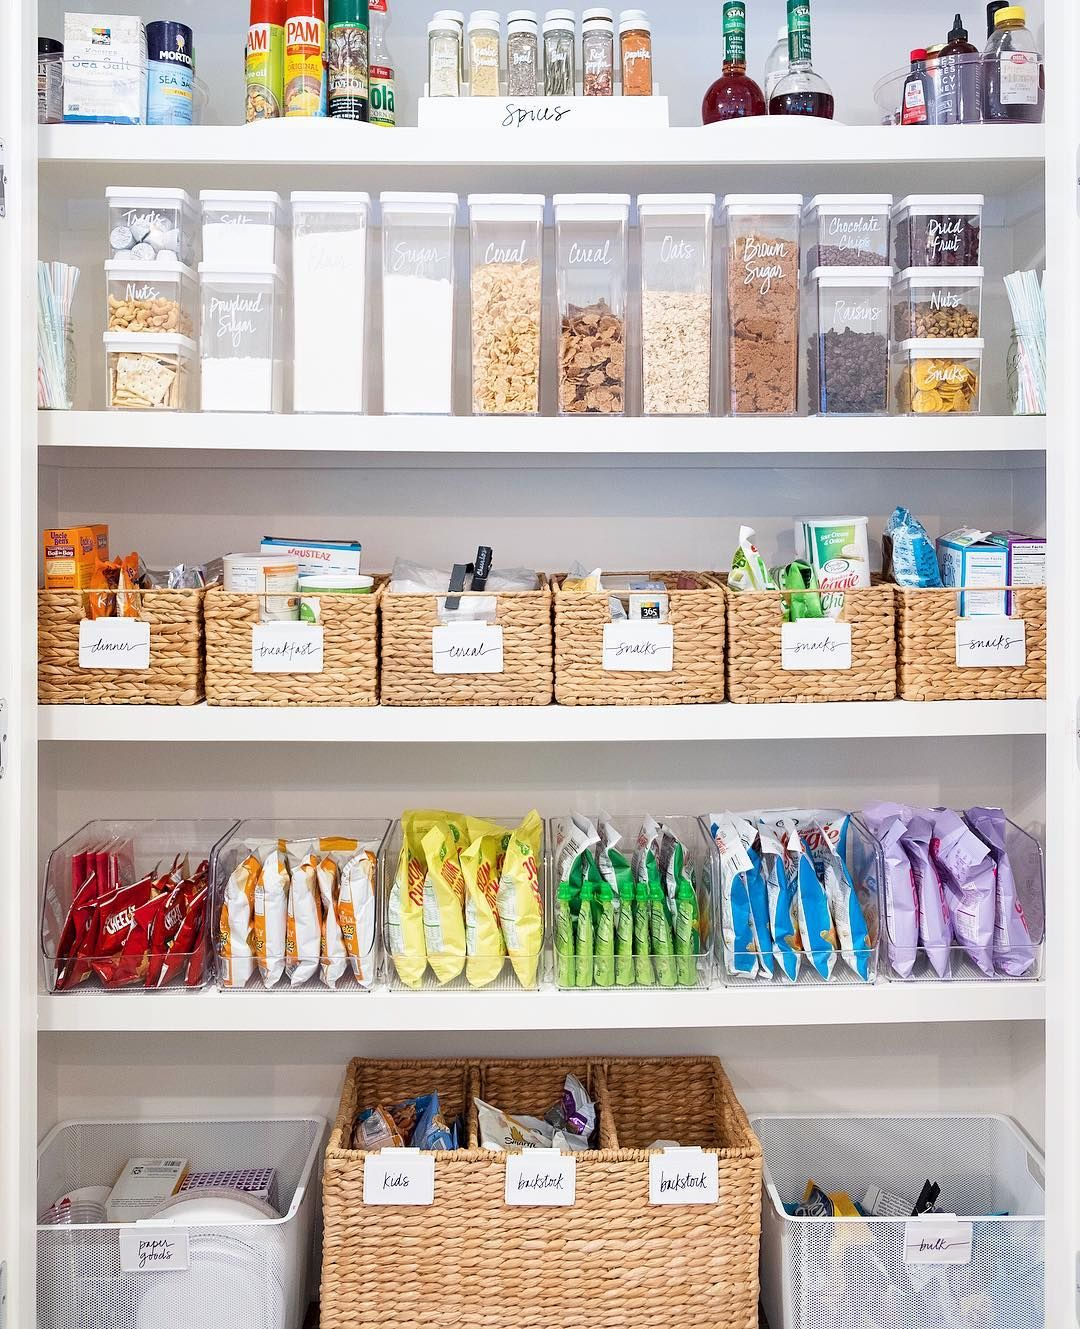 Q: Anything families can do on a daily basis to keep their pantry in  tip-top shape?